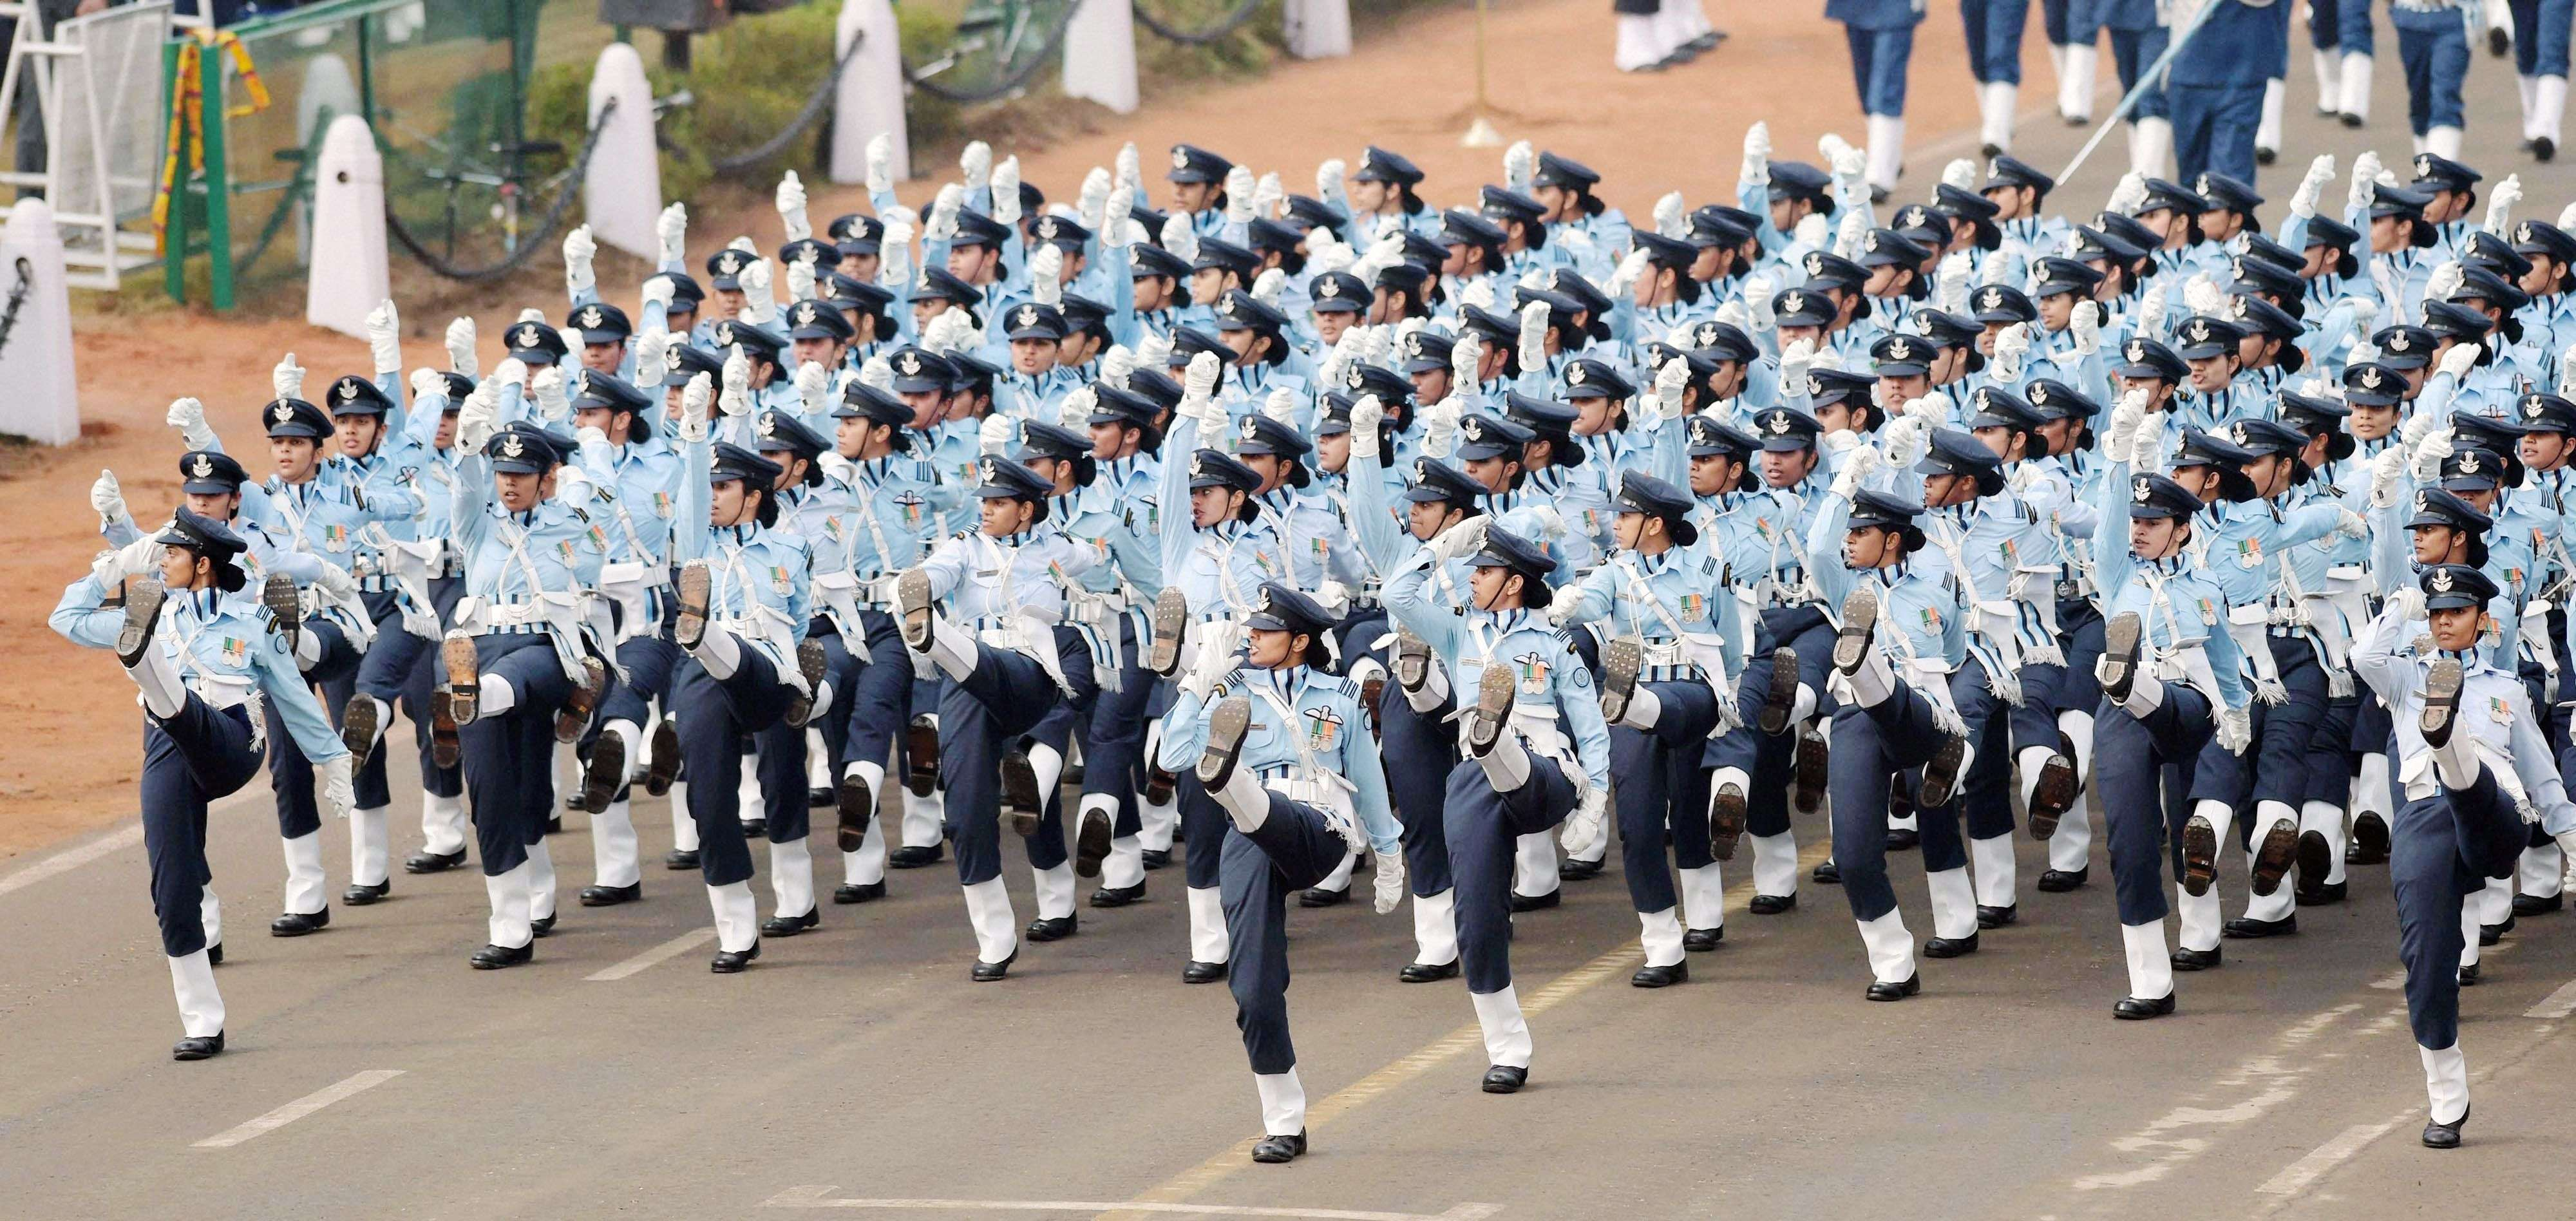 Paramilitary soldiers march during the full dress rehearsal for the Republic Day parade at Rajpath in New Delhi. (PTI photo by Manvender Vashist)